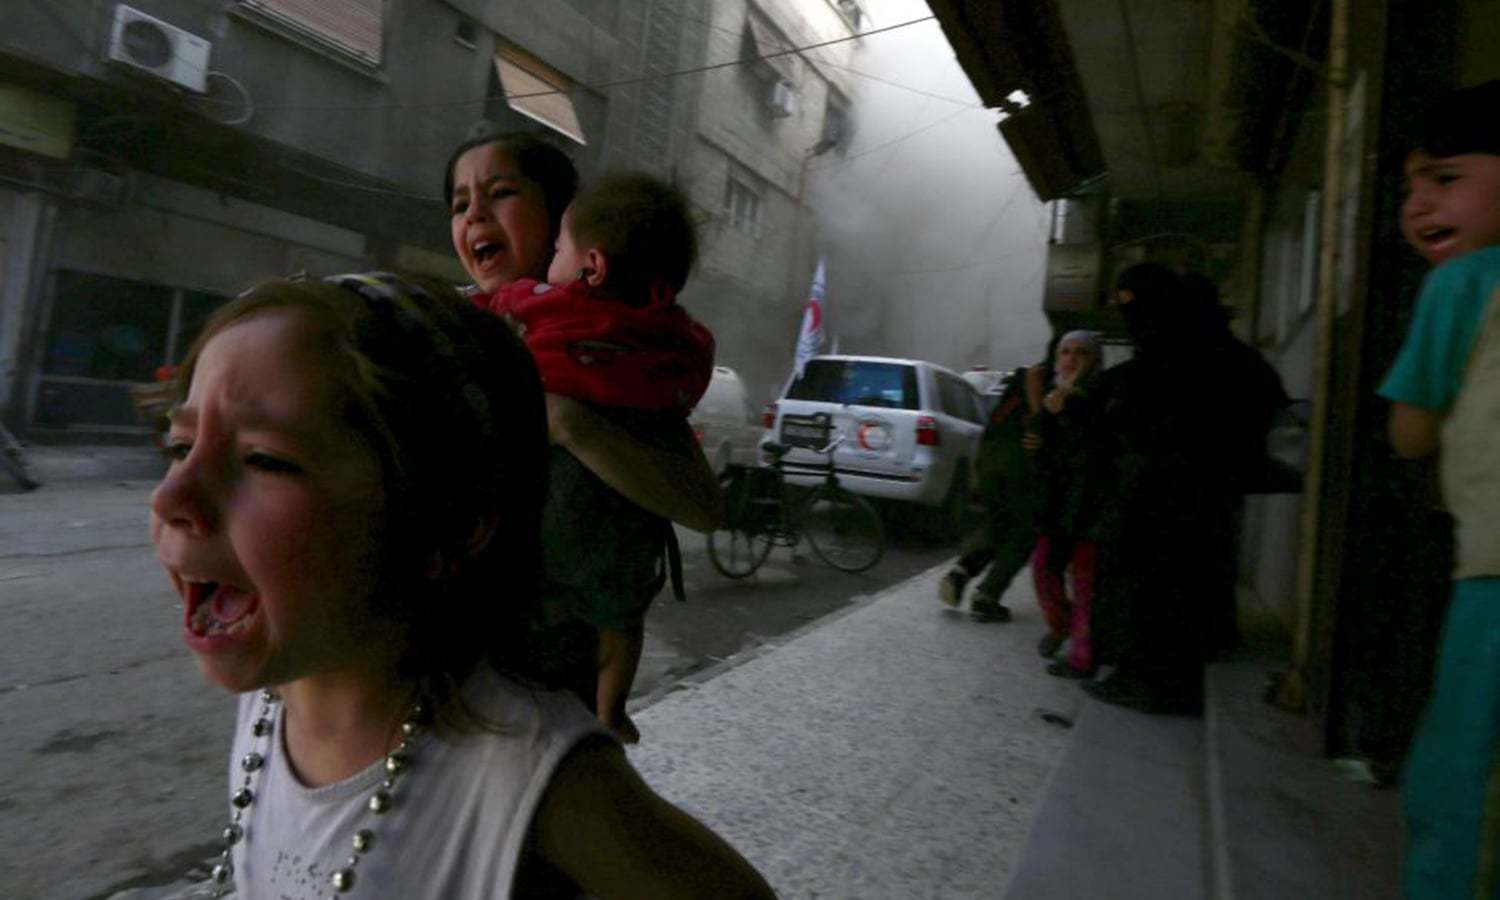 Its time for action on Syria's chemical weapons,not pointing fingers